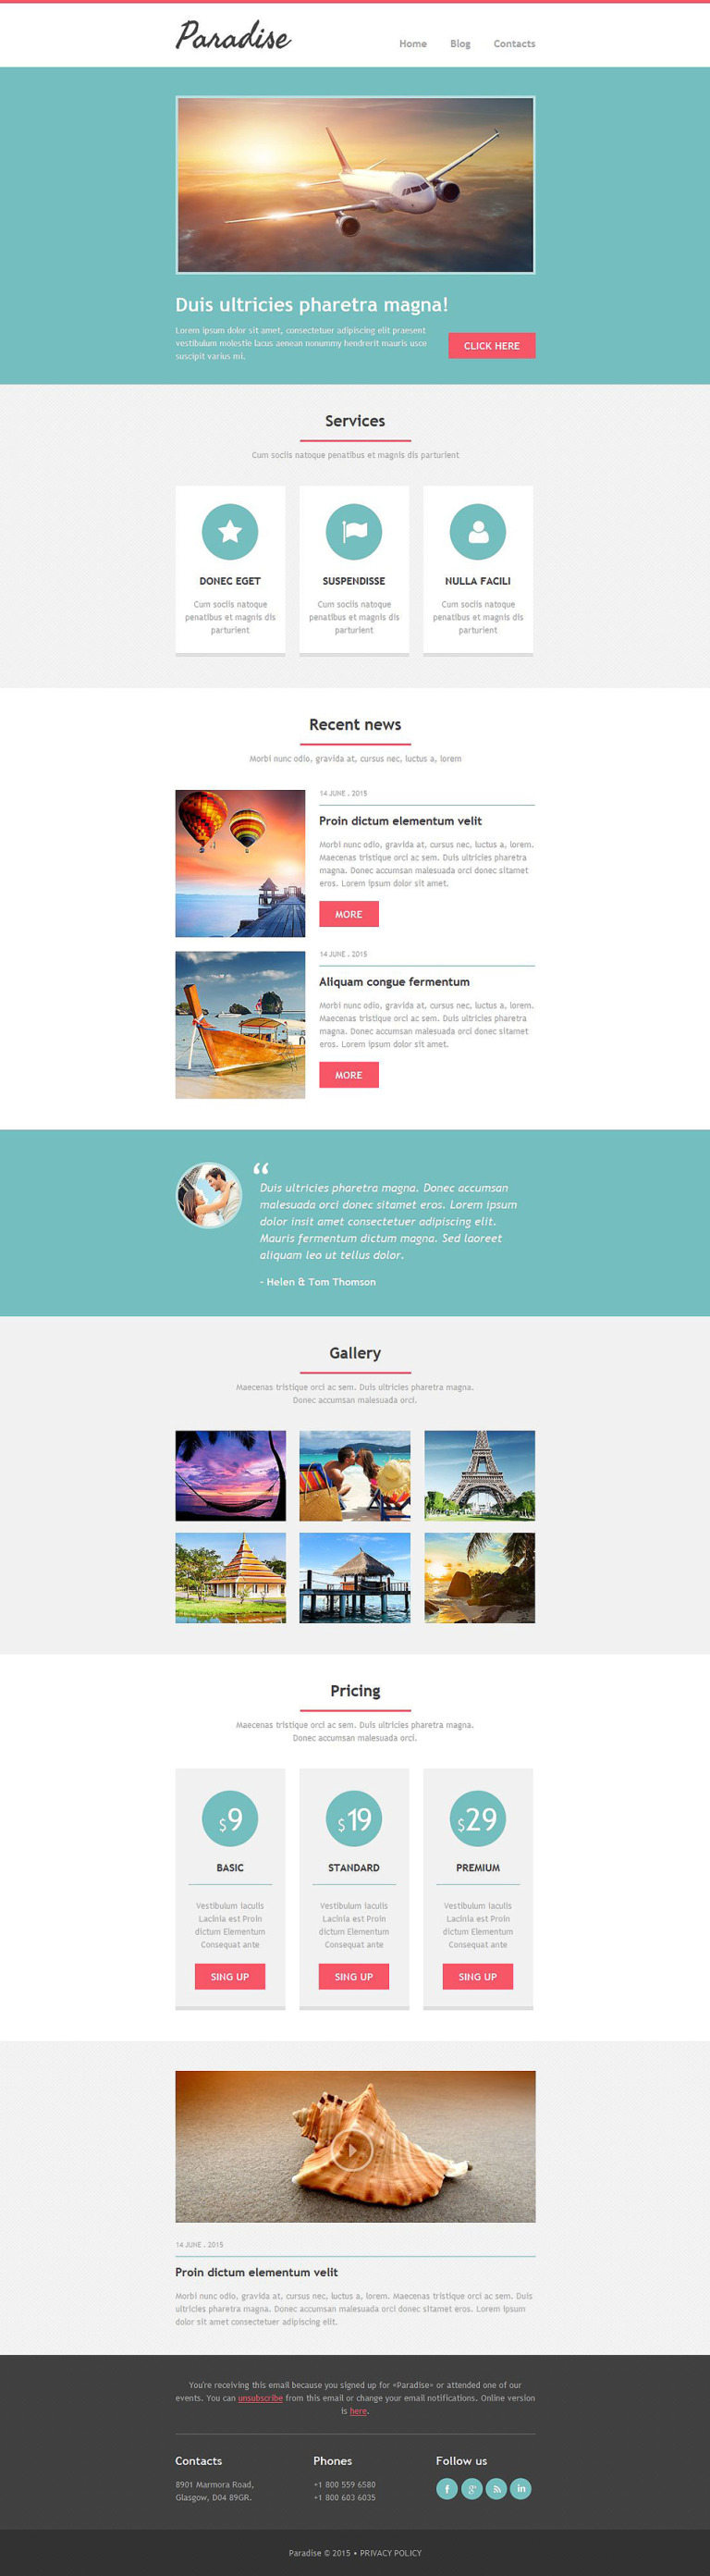 Travel Agency Newsletter Template New Screenshots BIG